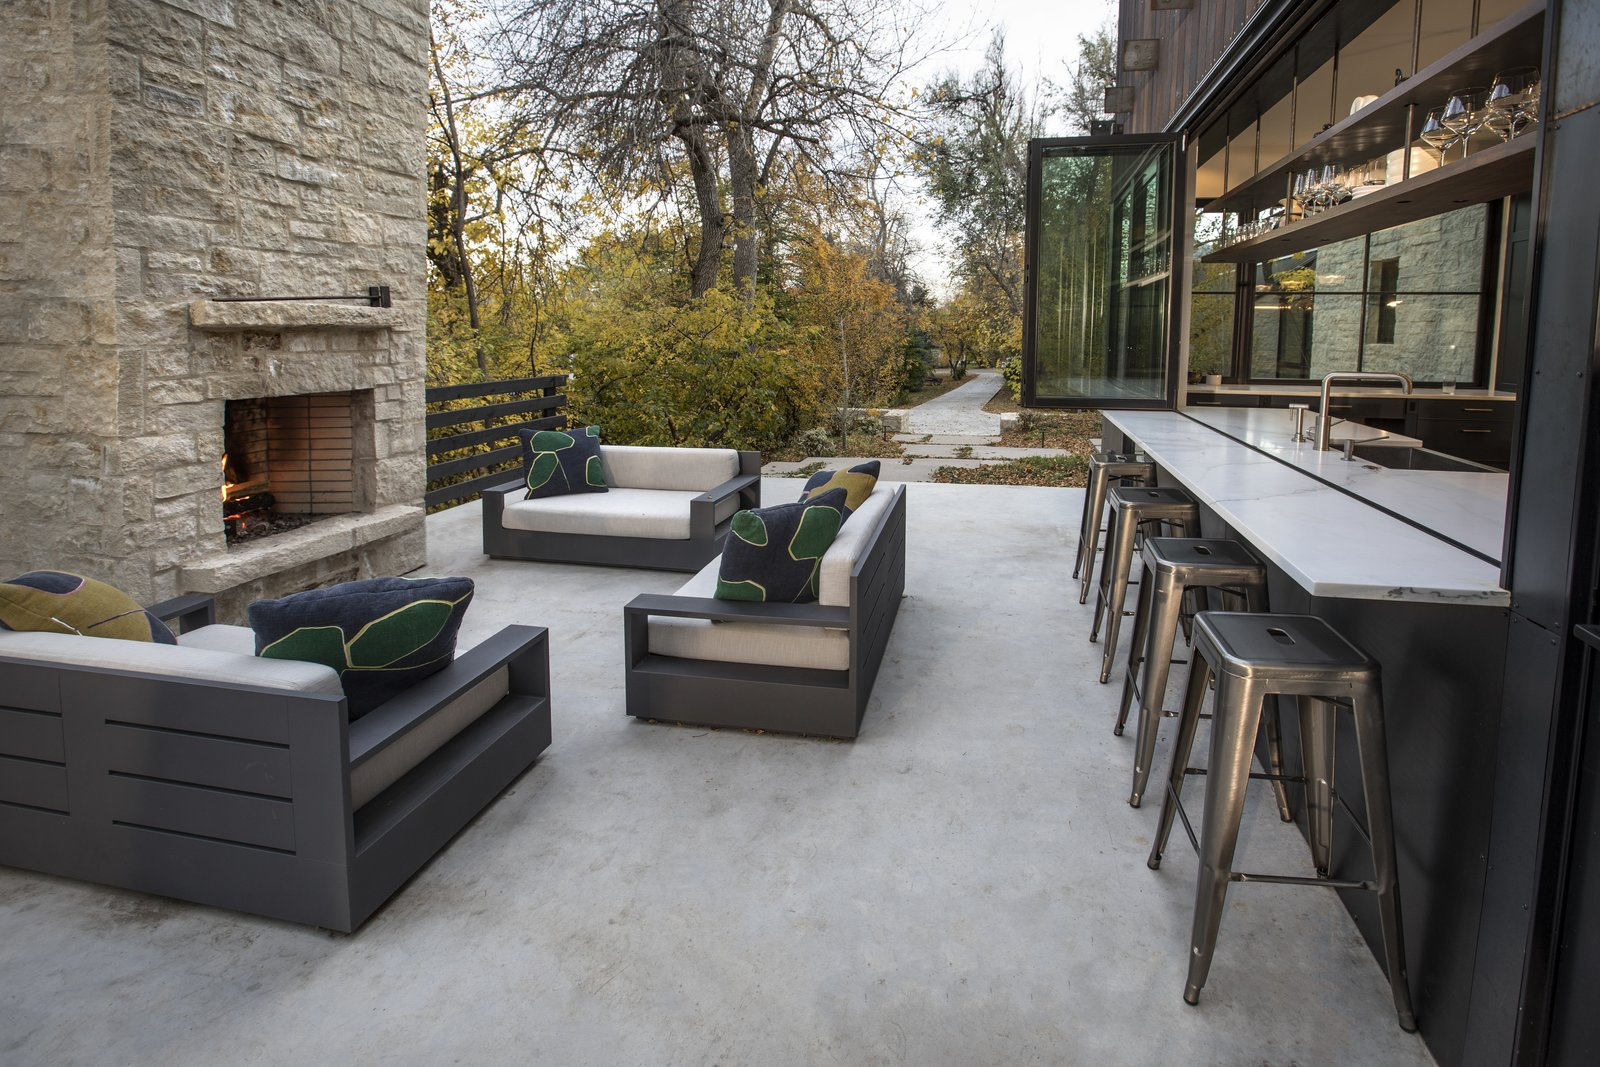 Modern farmhouse outdoor patio with bar and furniture set.